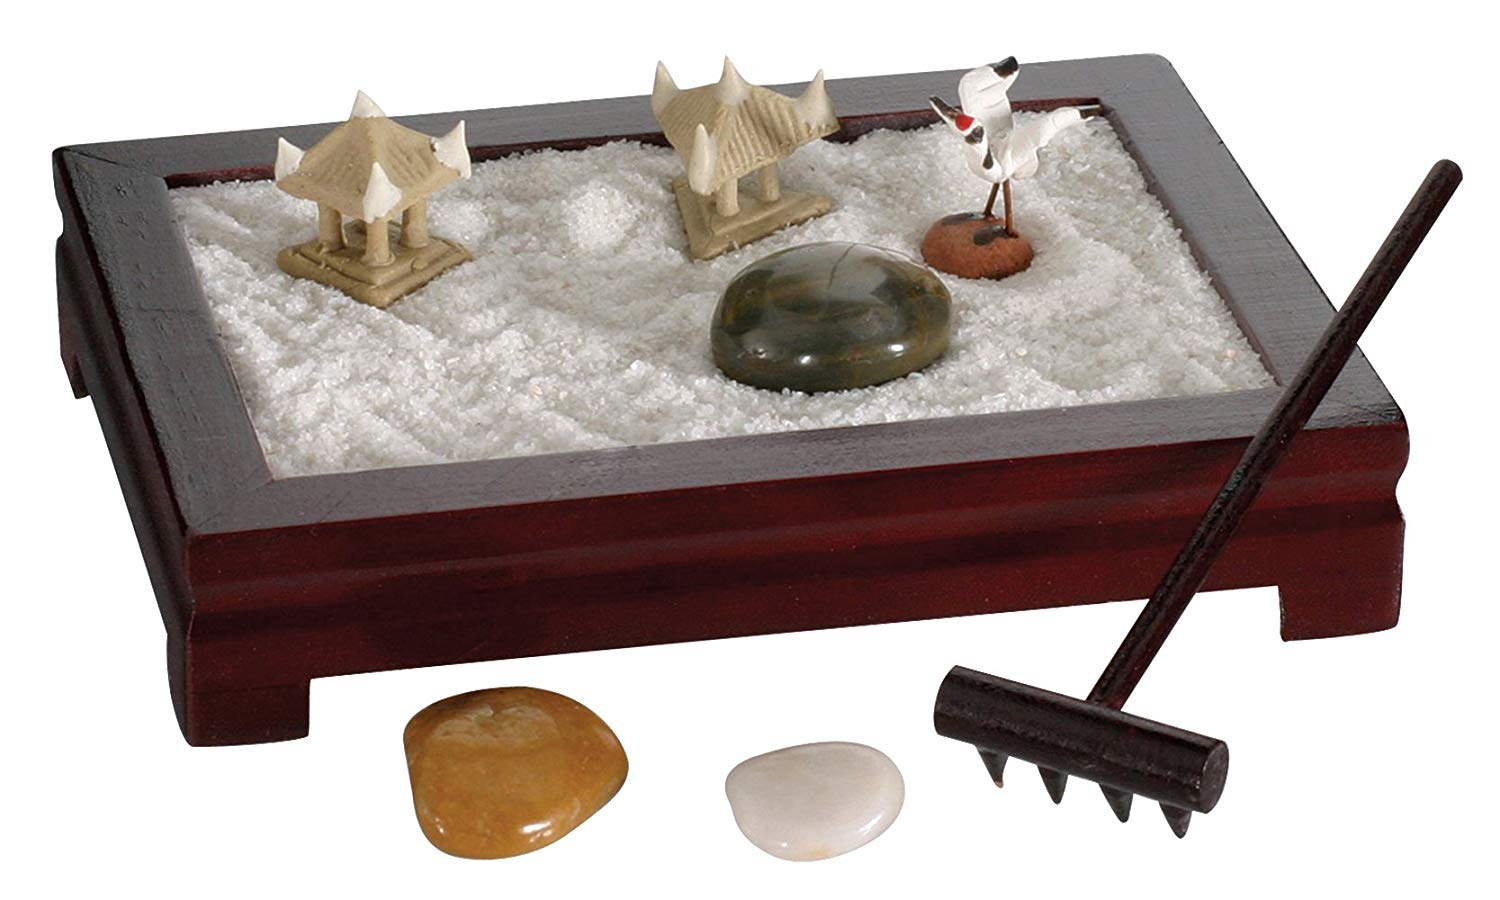 Mini zen garden from Amazon